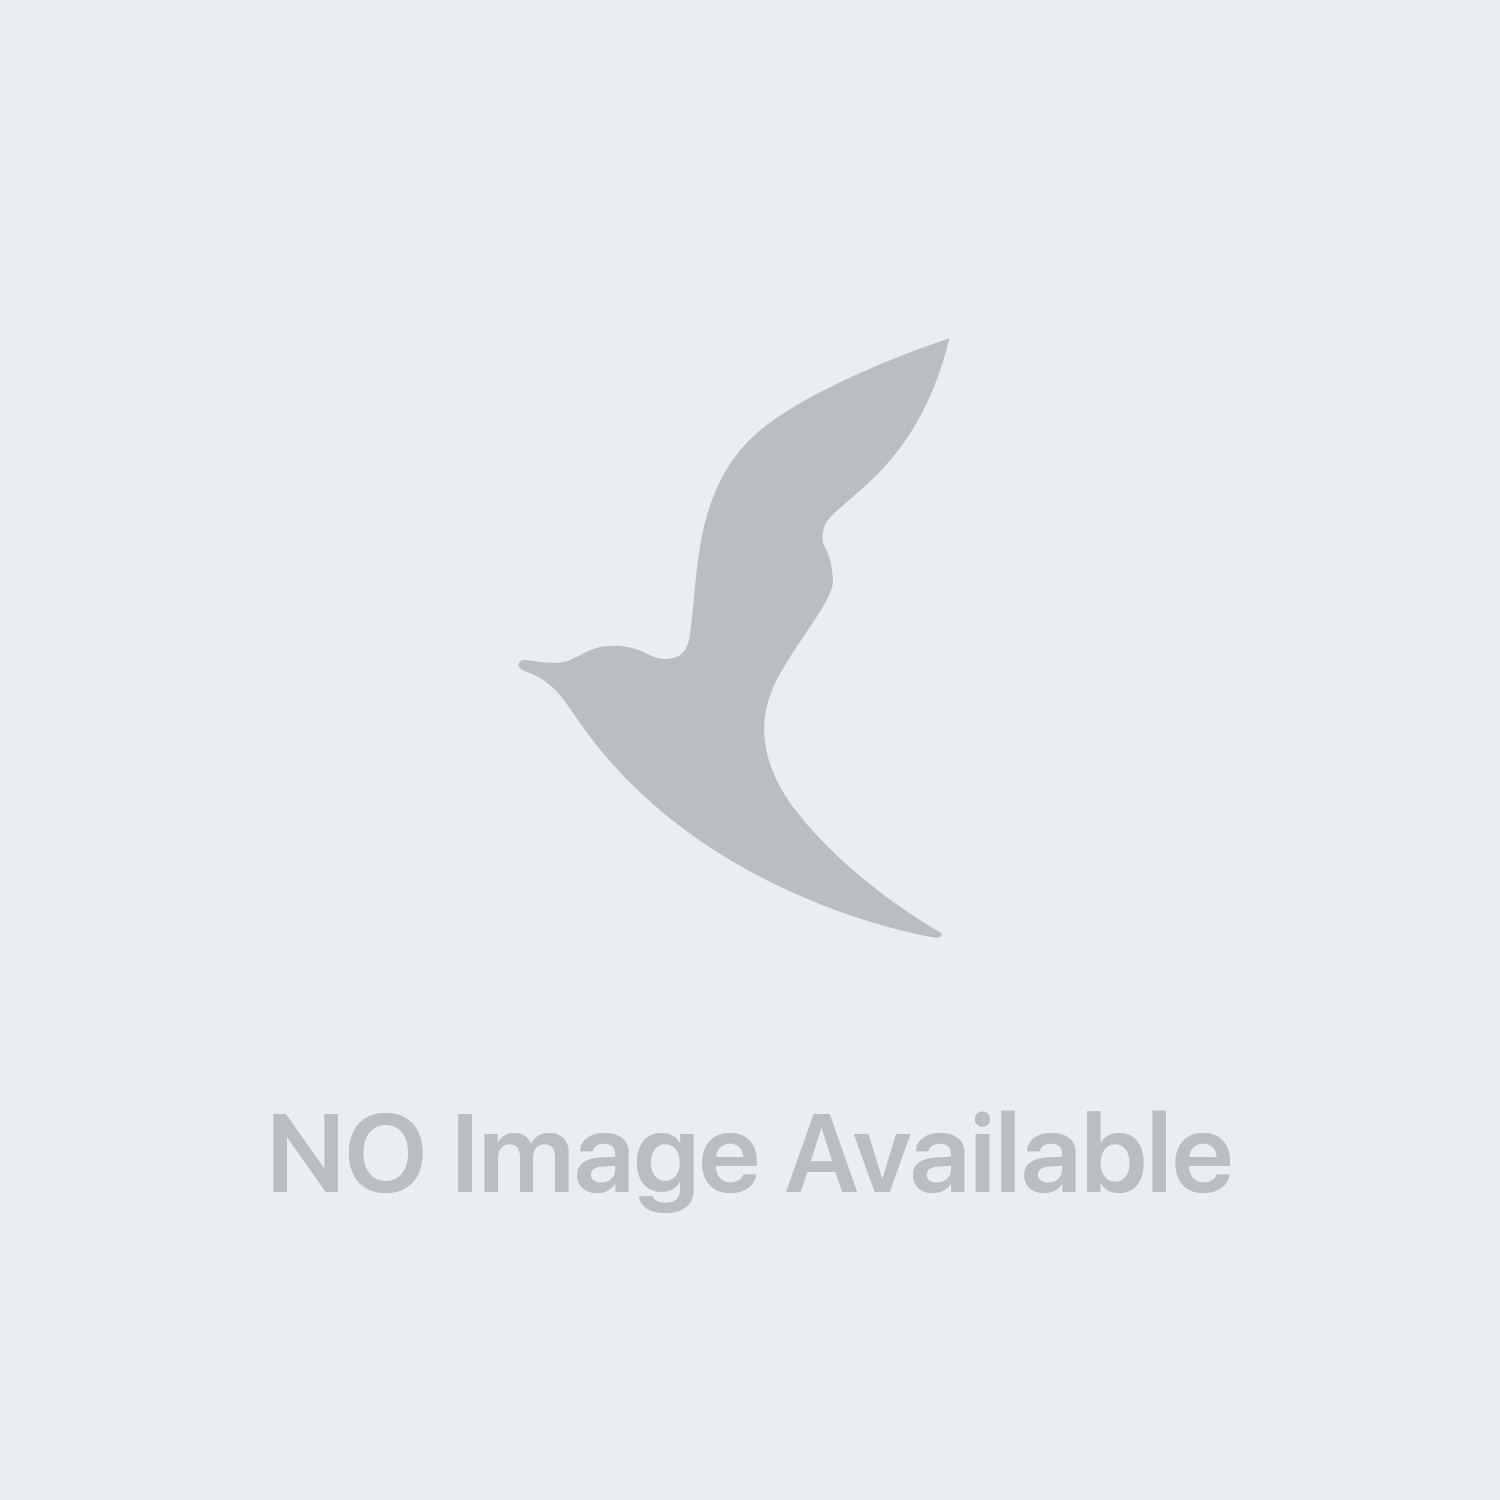 Baygon Scarafaggi & Formiche Spray Plus 400 Ml